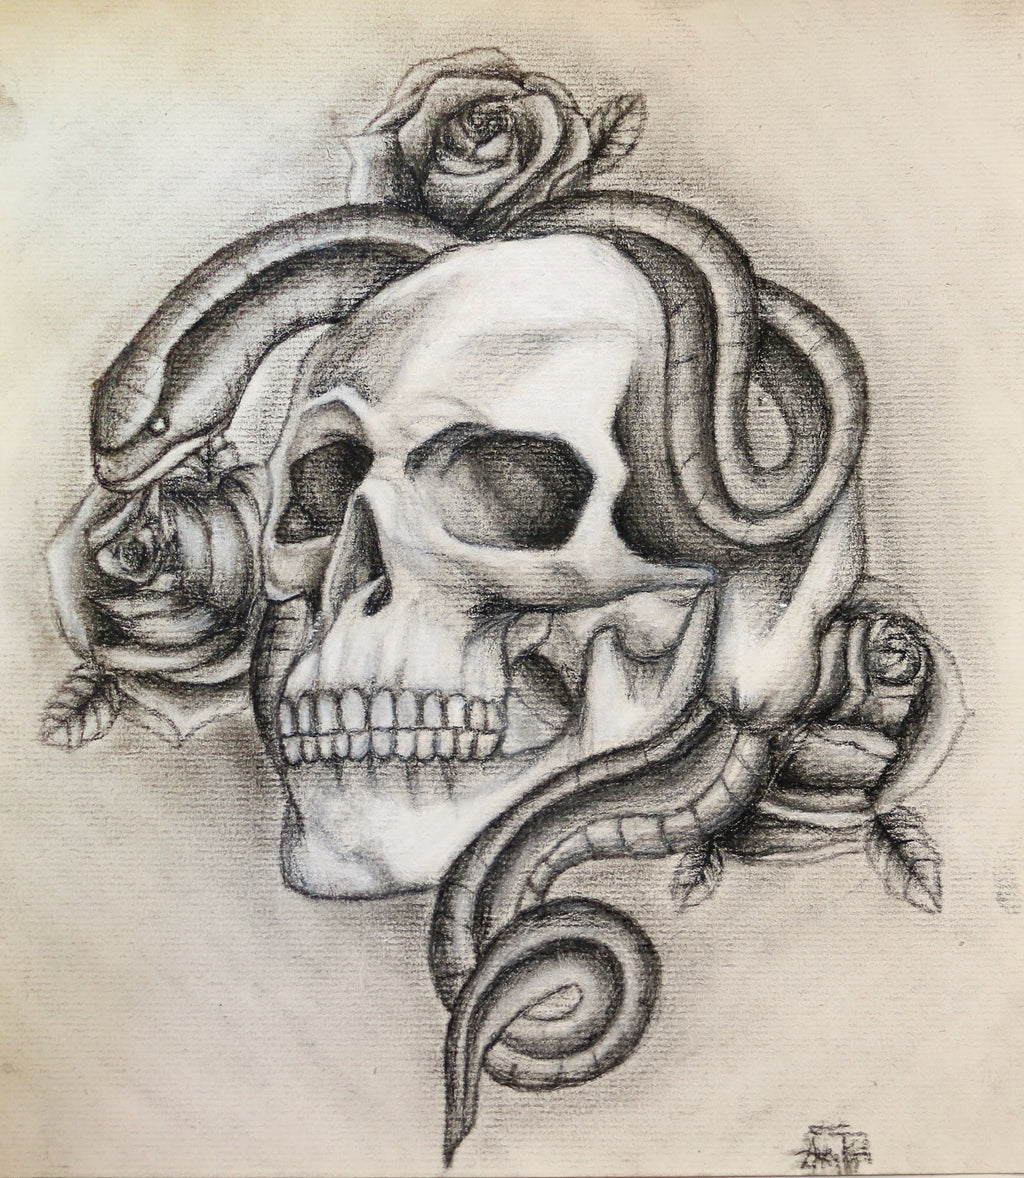 Original Skull Art Piece